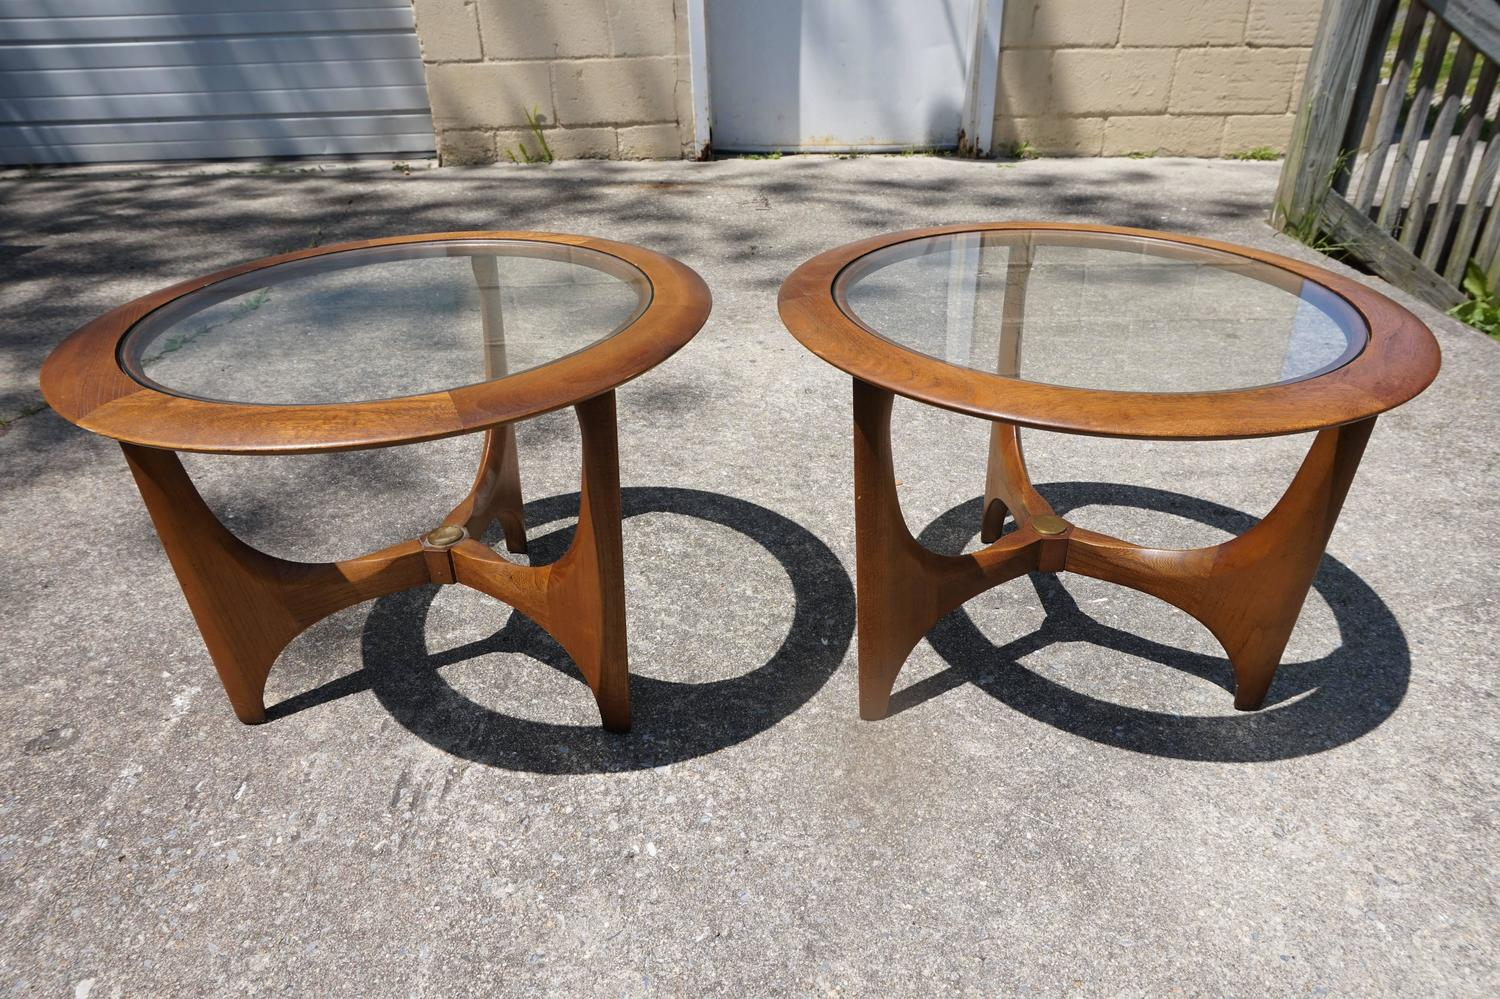 Mid Century Modern Round Side Table : Pair of Mid-Century Modern Walnut Glass Round Side Tables, Made by ...